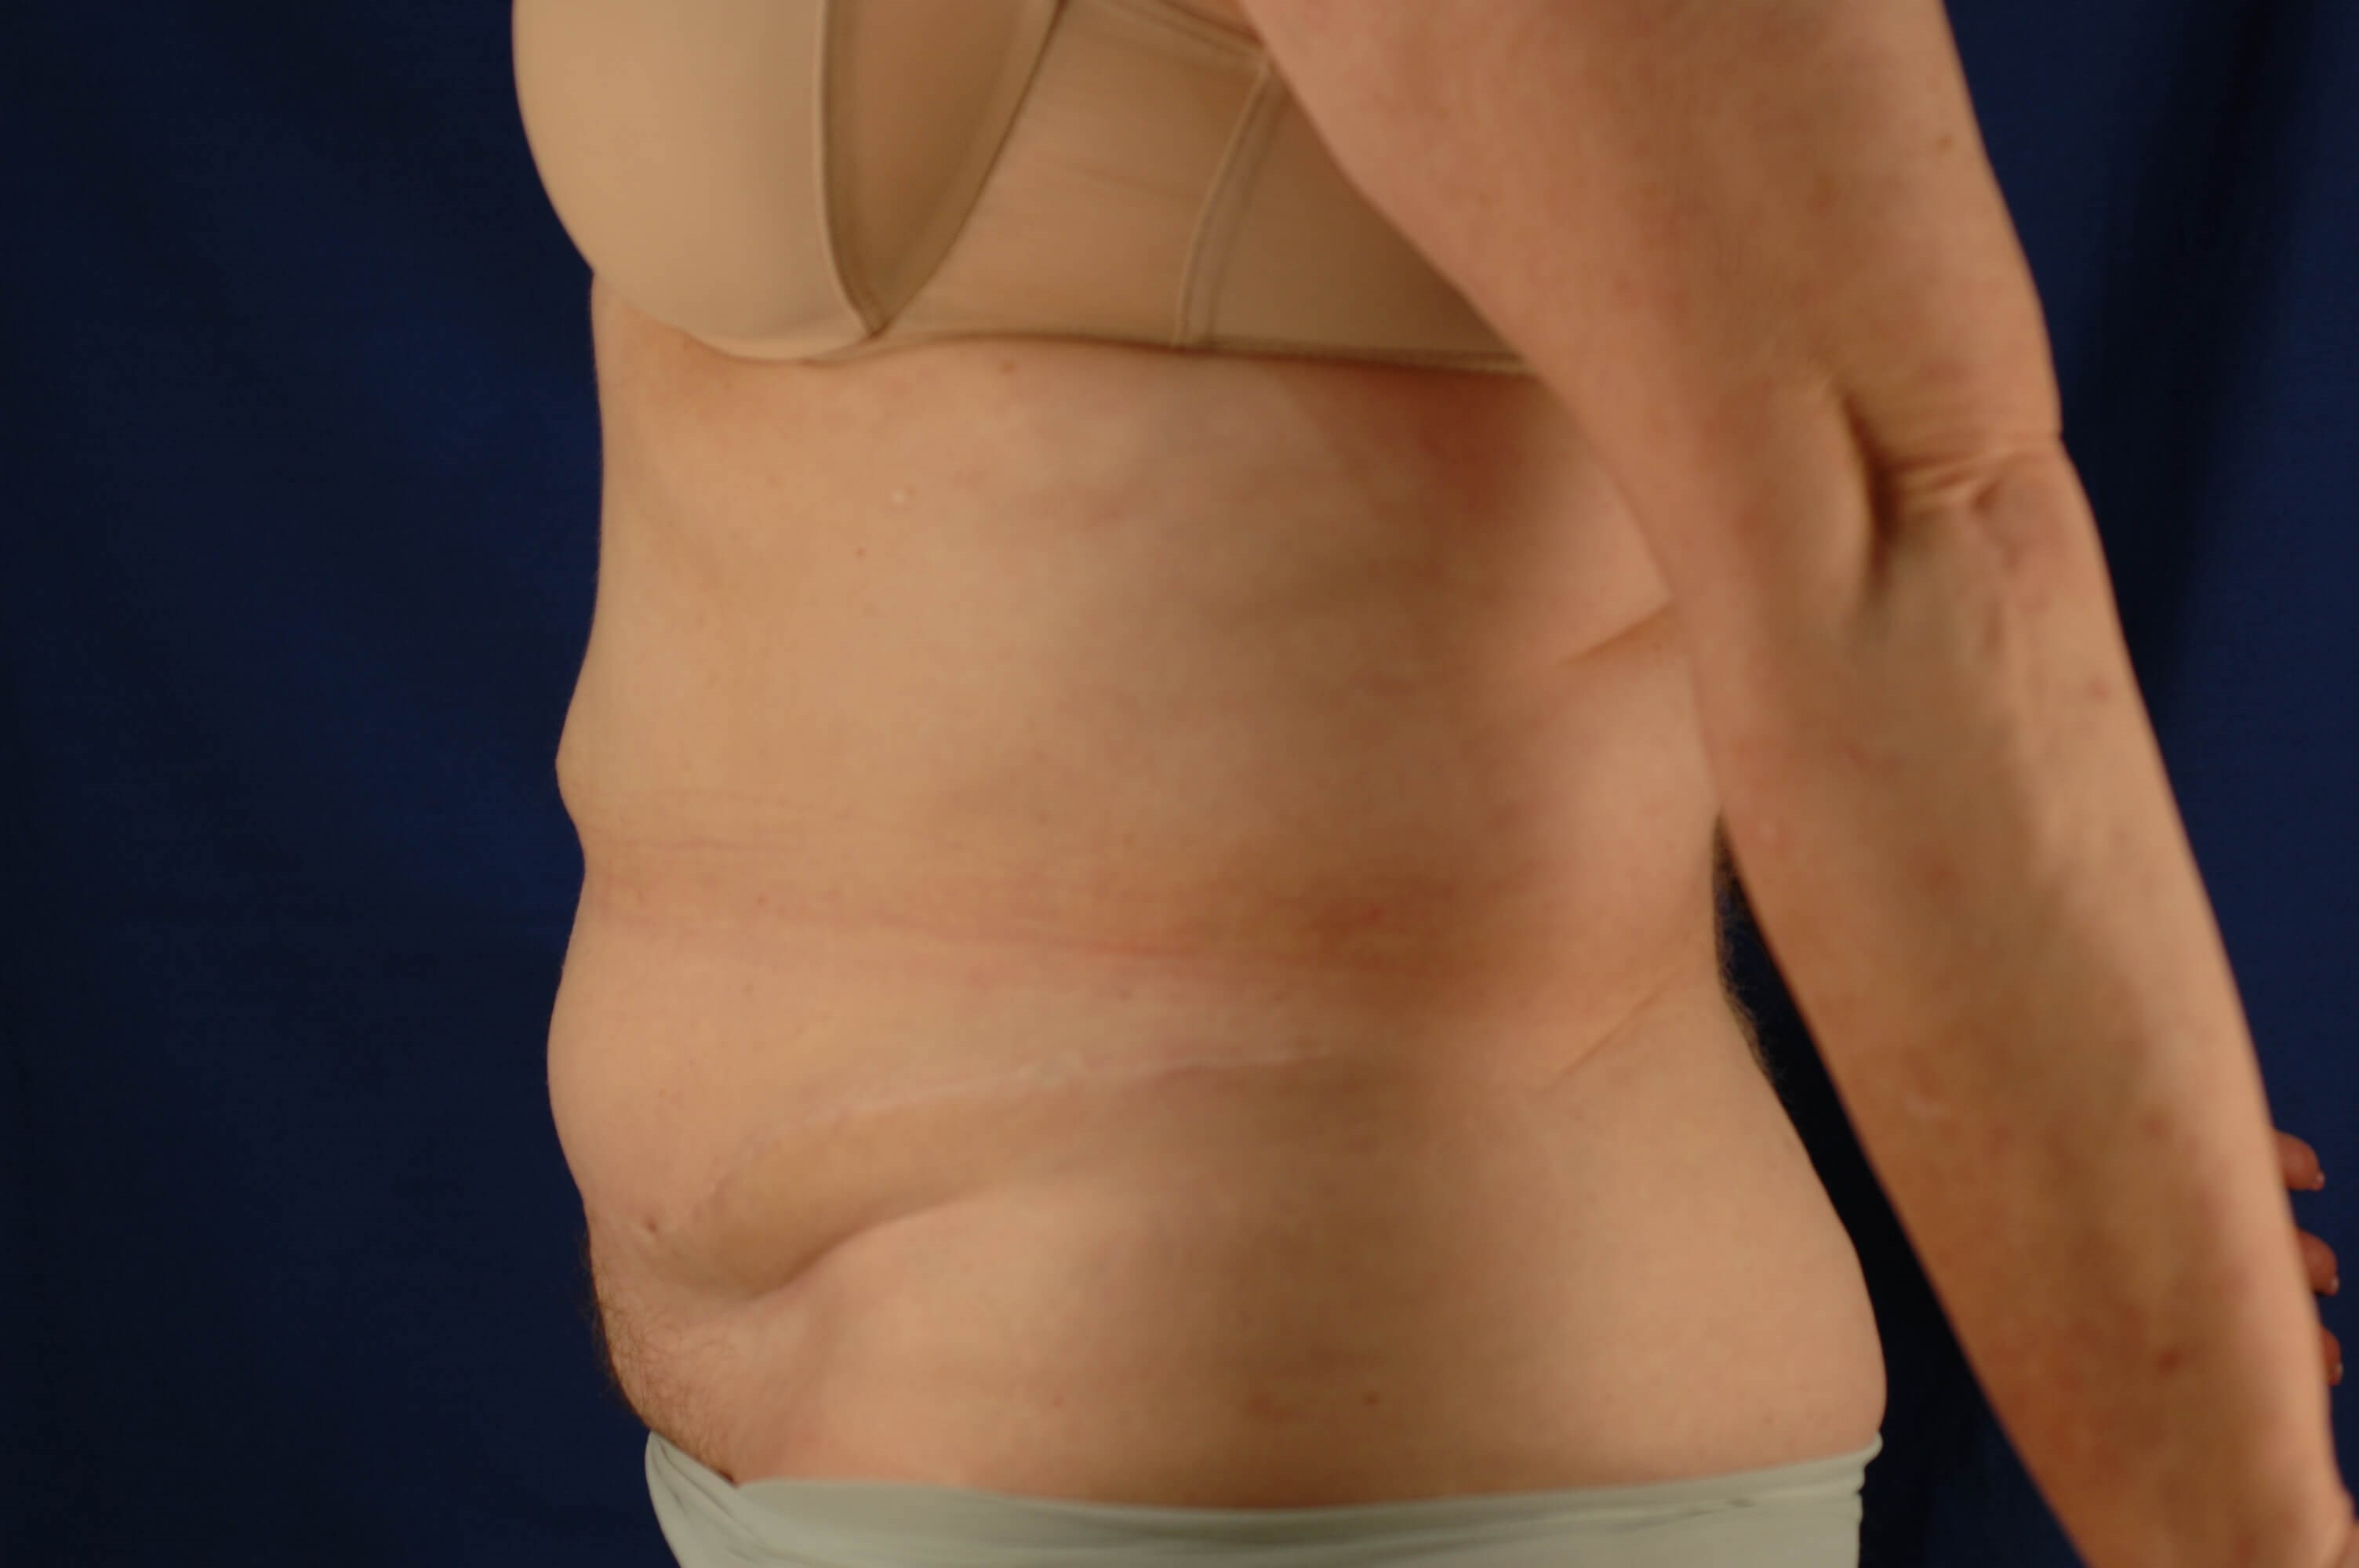 Newport Beach Body Contouring Side View After